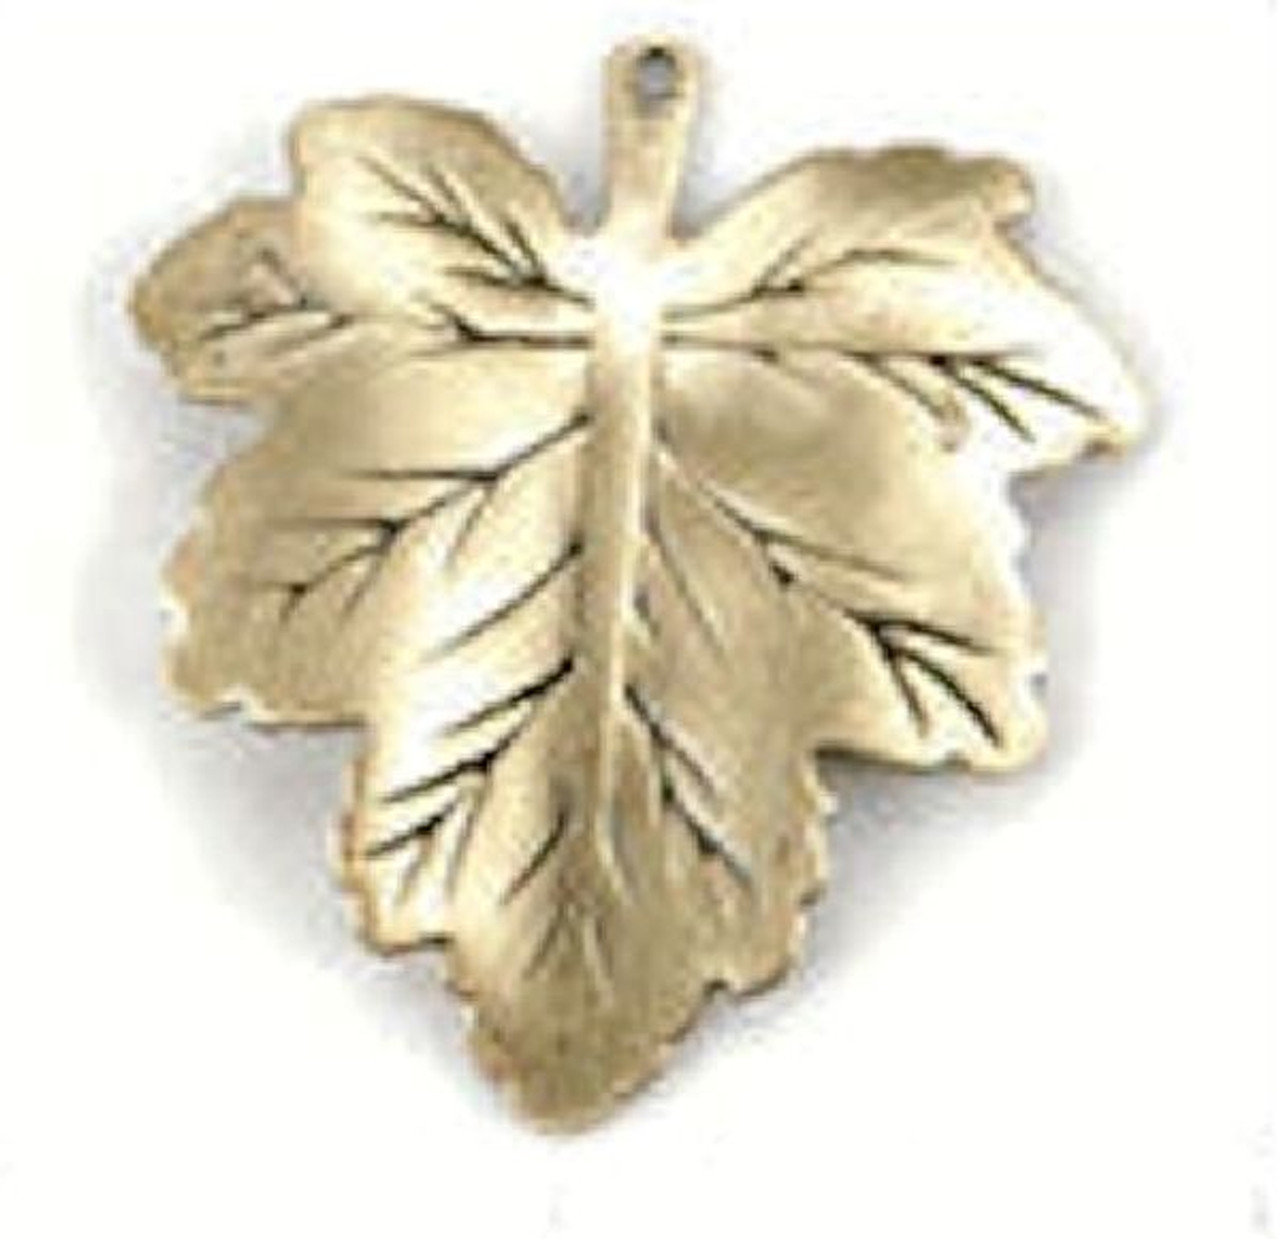 3 Antiqued Gold 24x26mm Maple Leaf Pendant Charms Leaves *